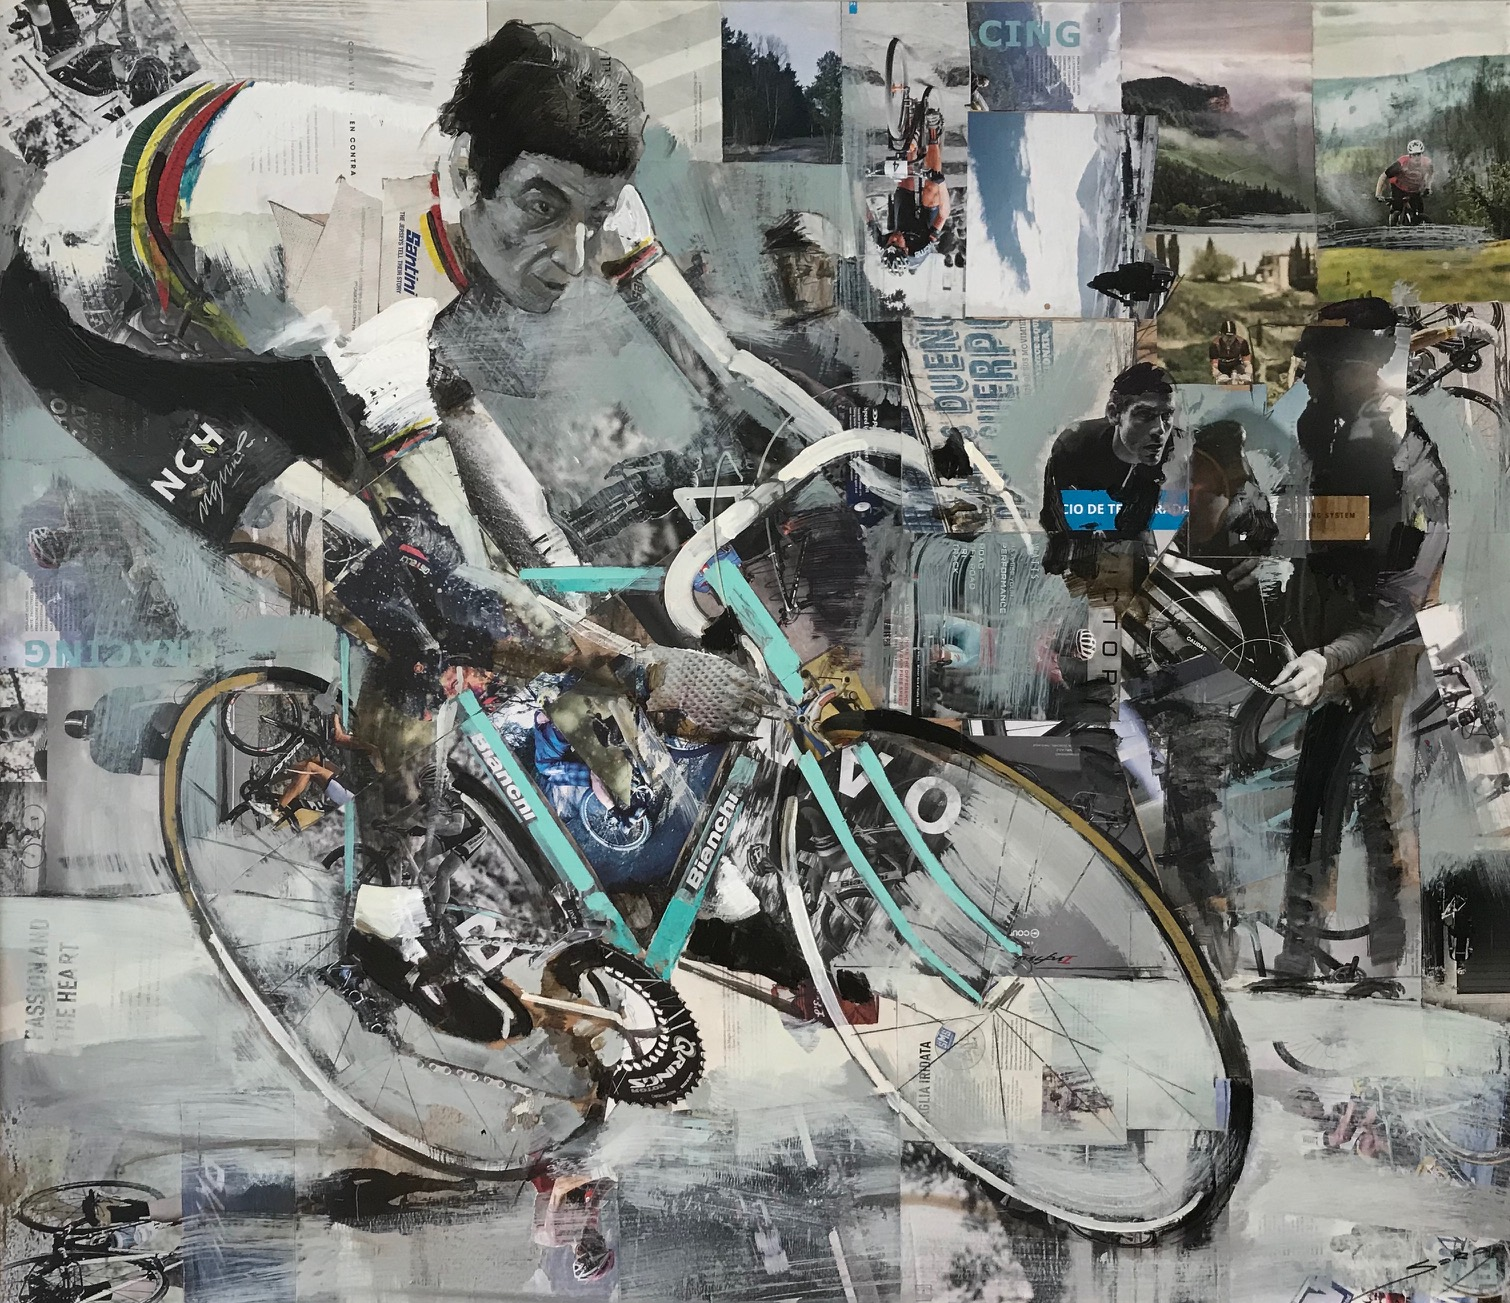 The Bianchi Cycling Cafe in Milan features a portrait of Felice Gimondi in action